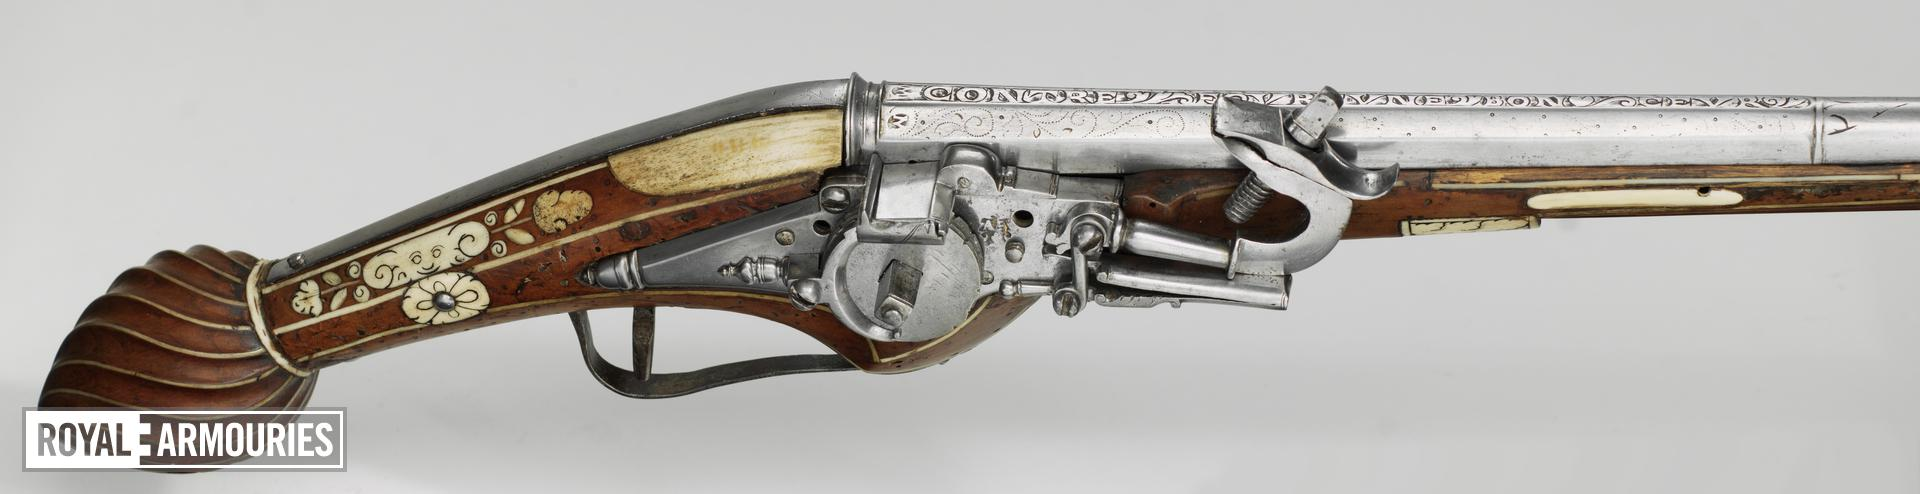 Wheellock holster pistol Possibly by GMM